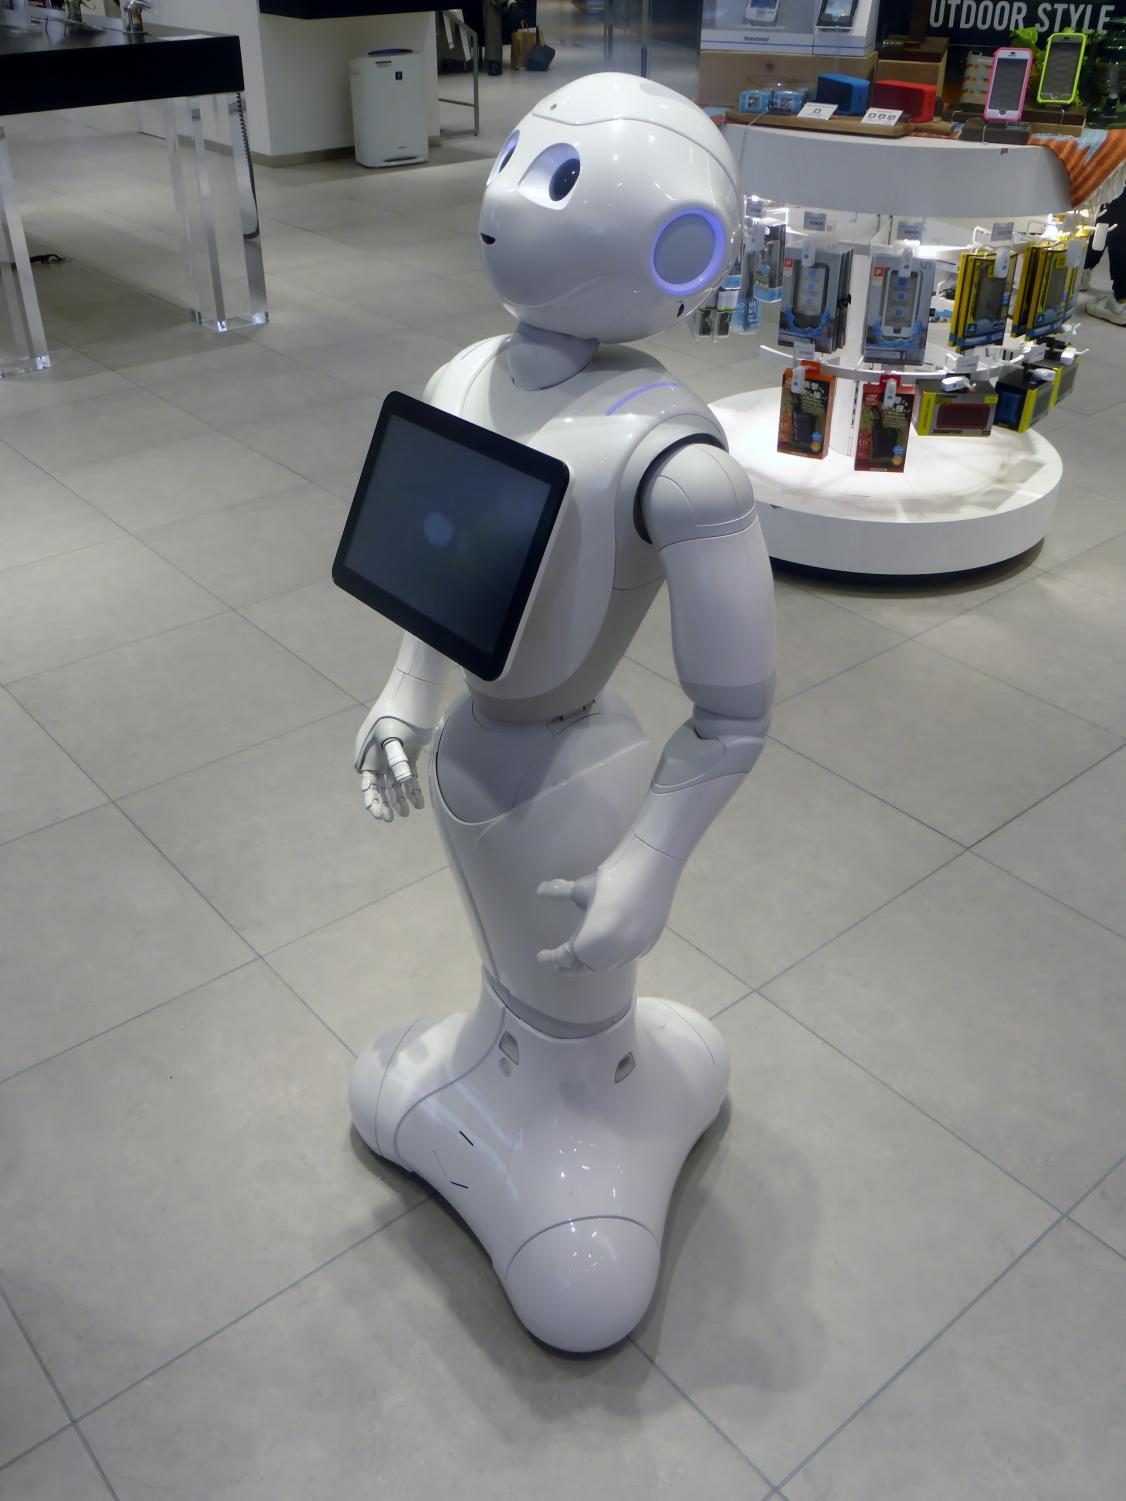 The robot Pepper standing in a retail environment.